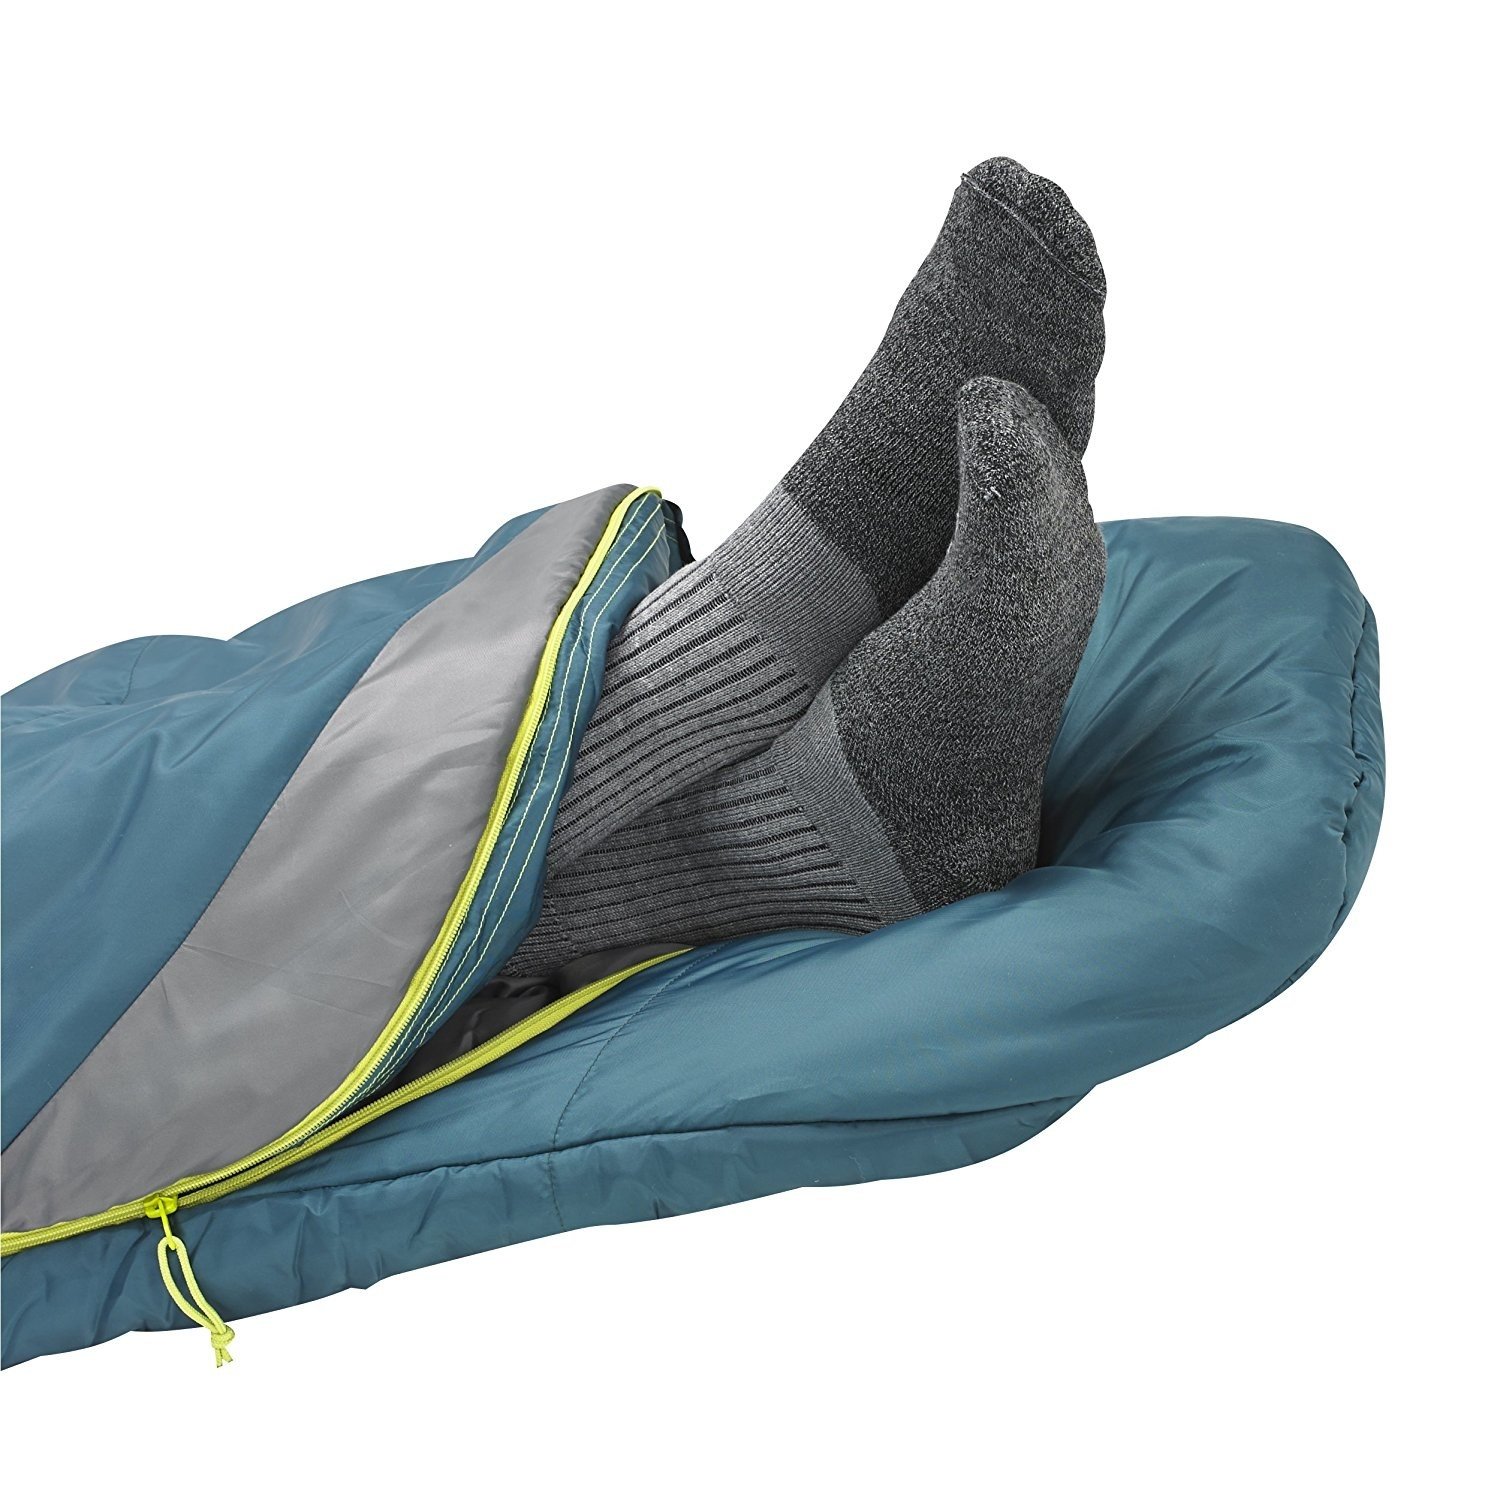 25 Of The Best Sleeping Bags You Can Get On Amazon